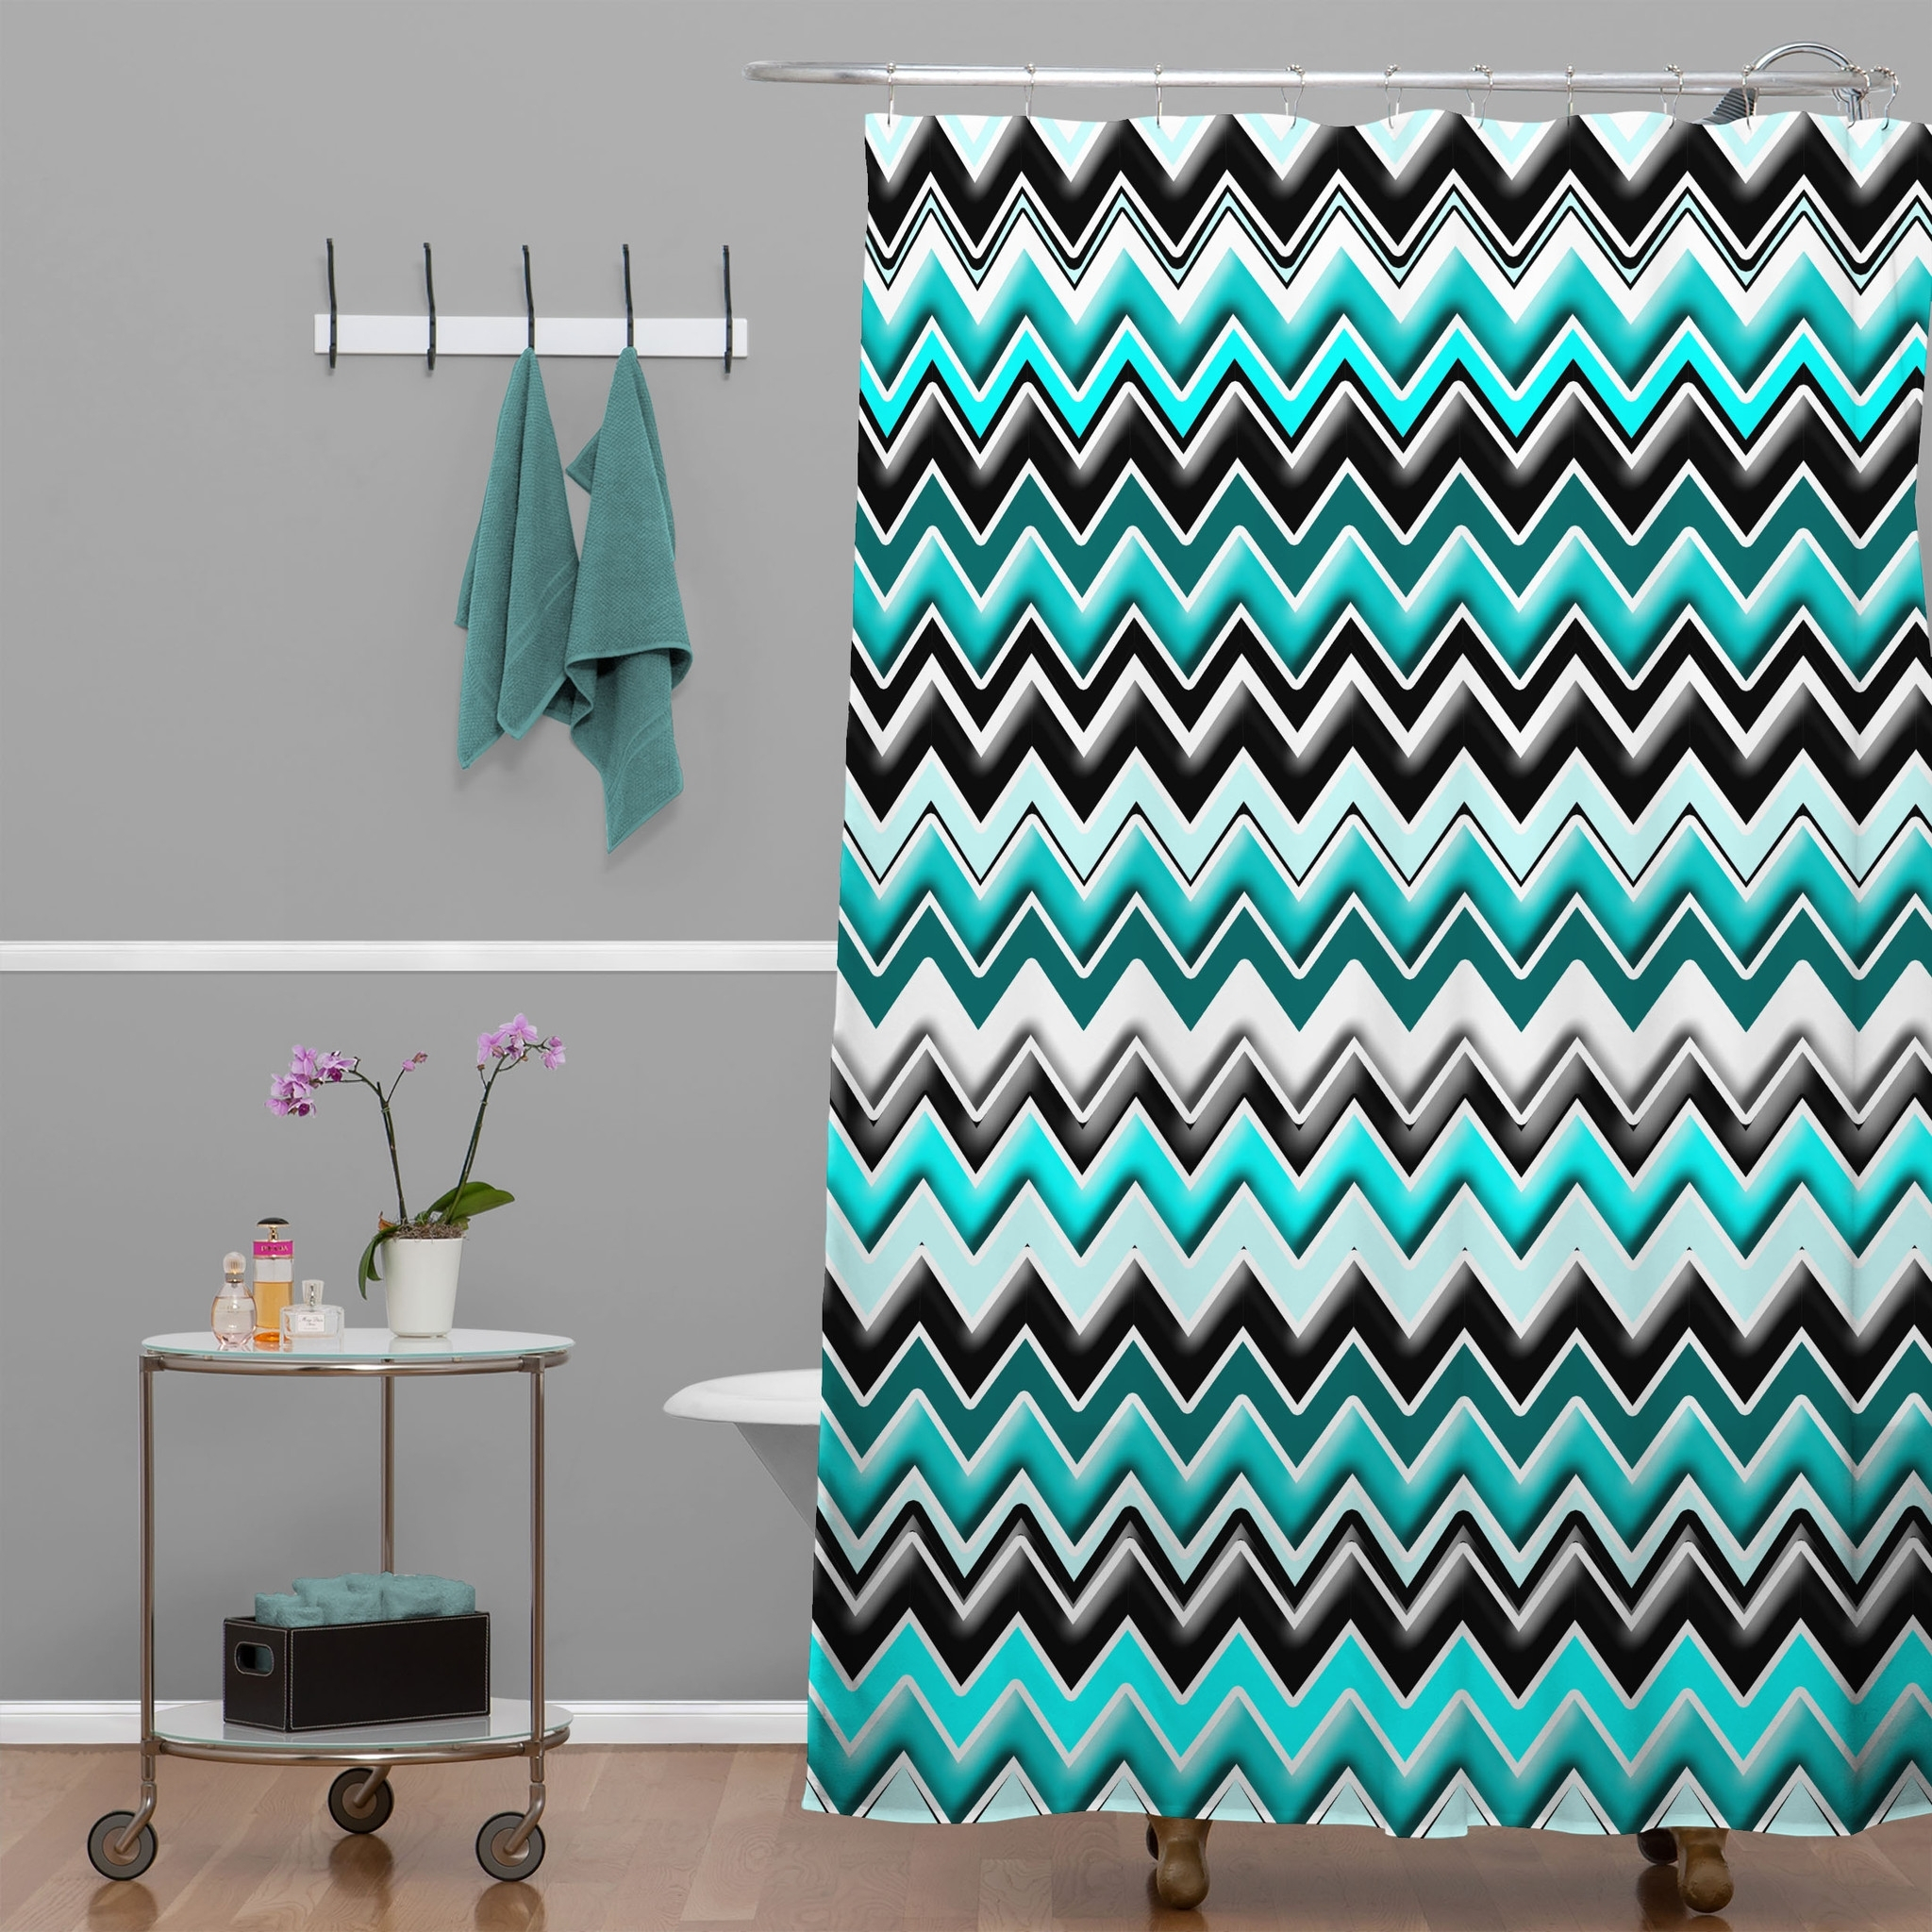 Grey And Turquoise Shower Curtain. Gray And Teal Chevron Shower Curtain Curtains Design pertaining to  sizing 2048 X Grey Ideas